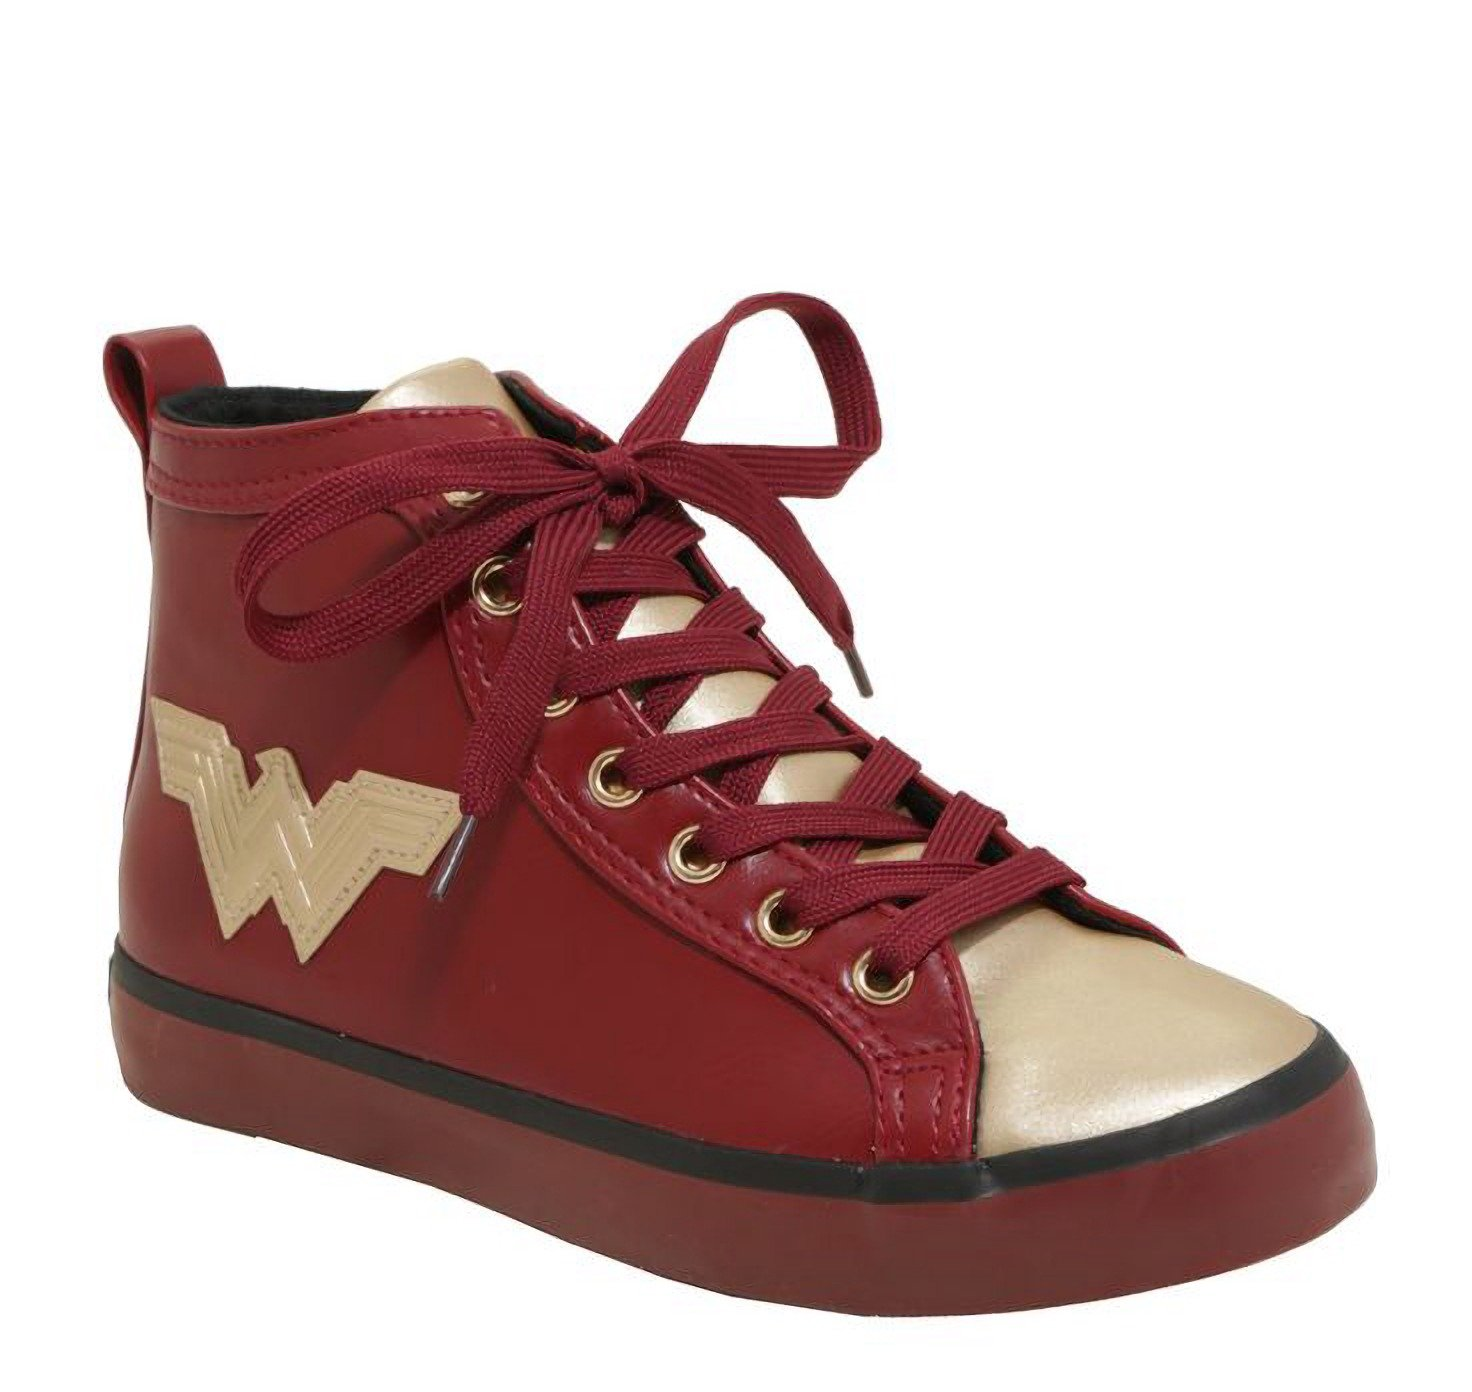 DC Comics Women's Ladies Wonder High Top Sneaker B076CF4VFS 7 B(M) US|Maroon